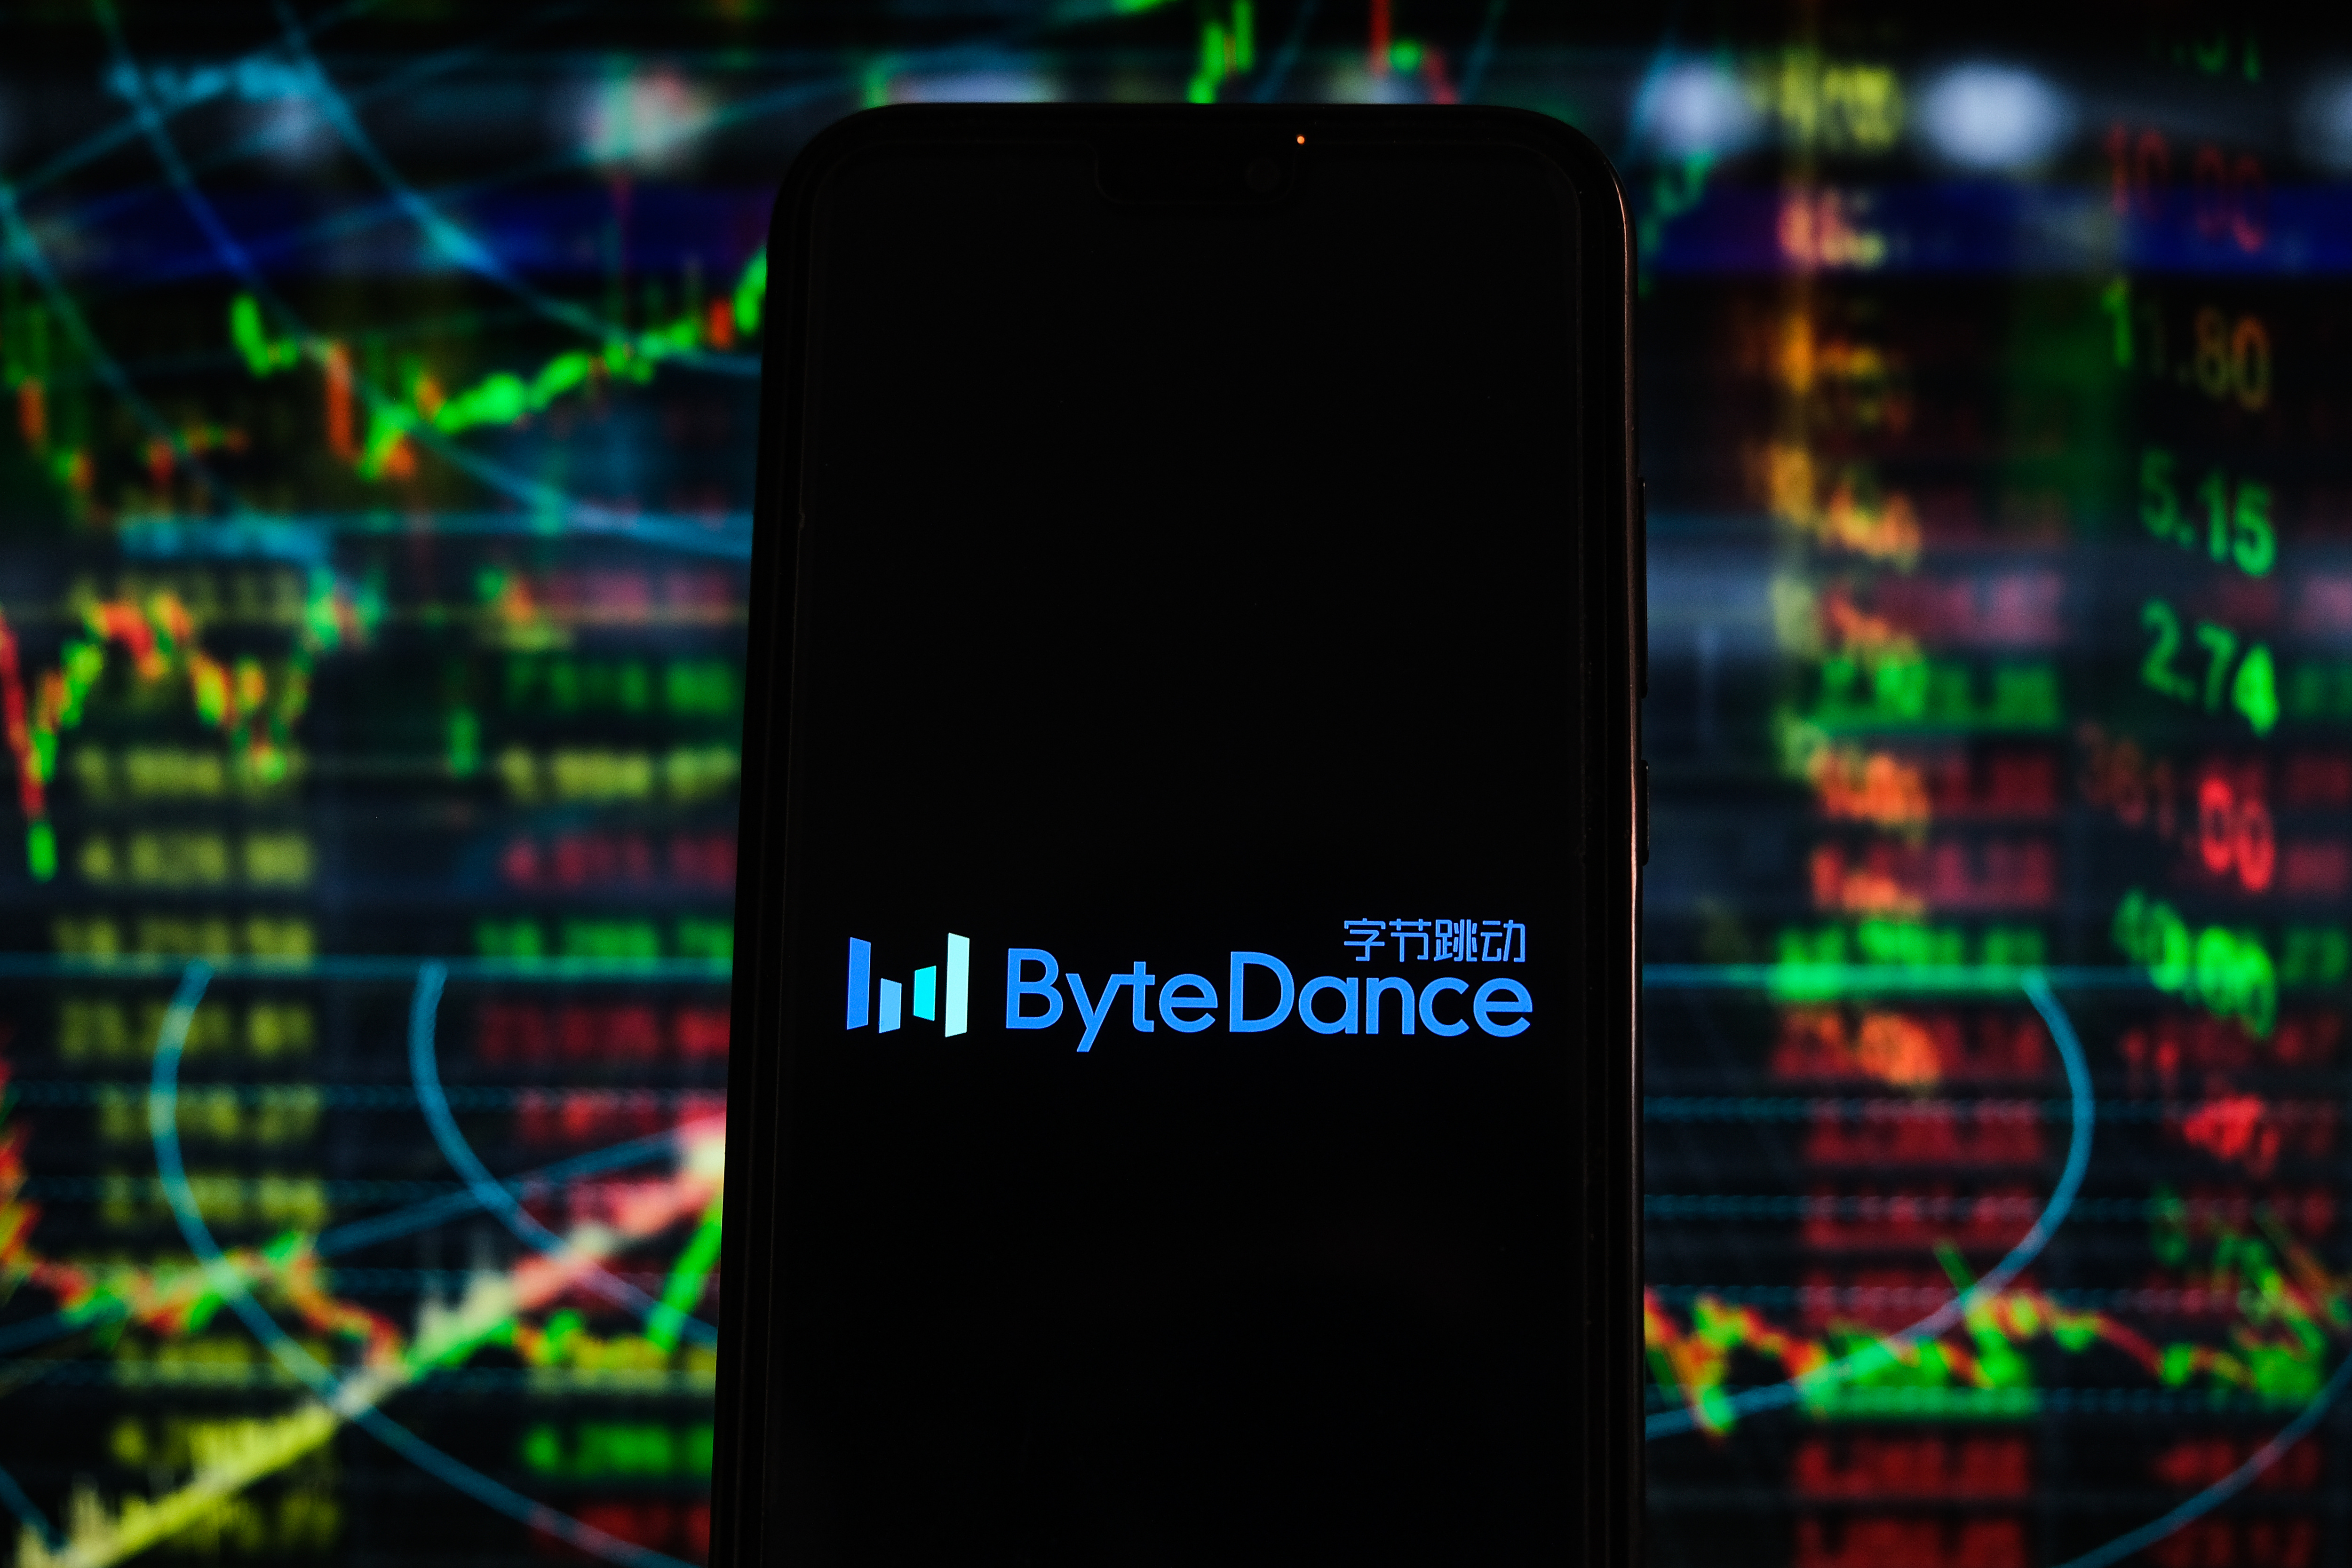 ByteDance, parent company of TikTok, may put its IPO on hold indefinitely